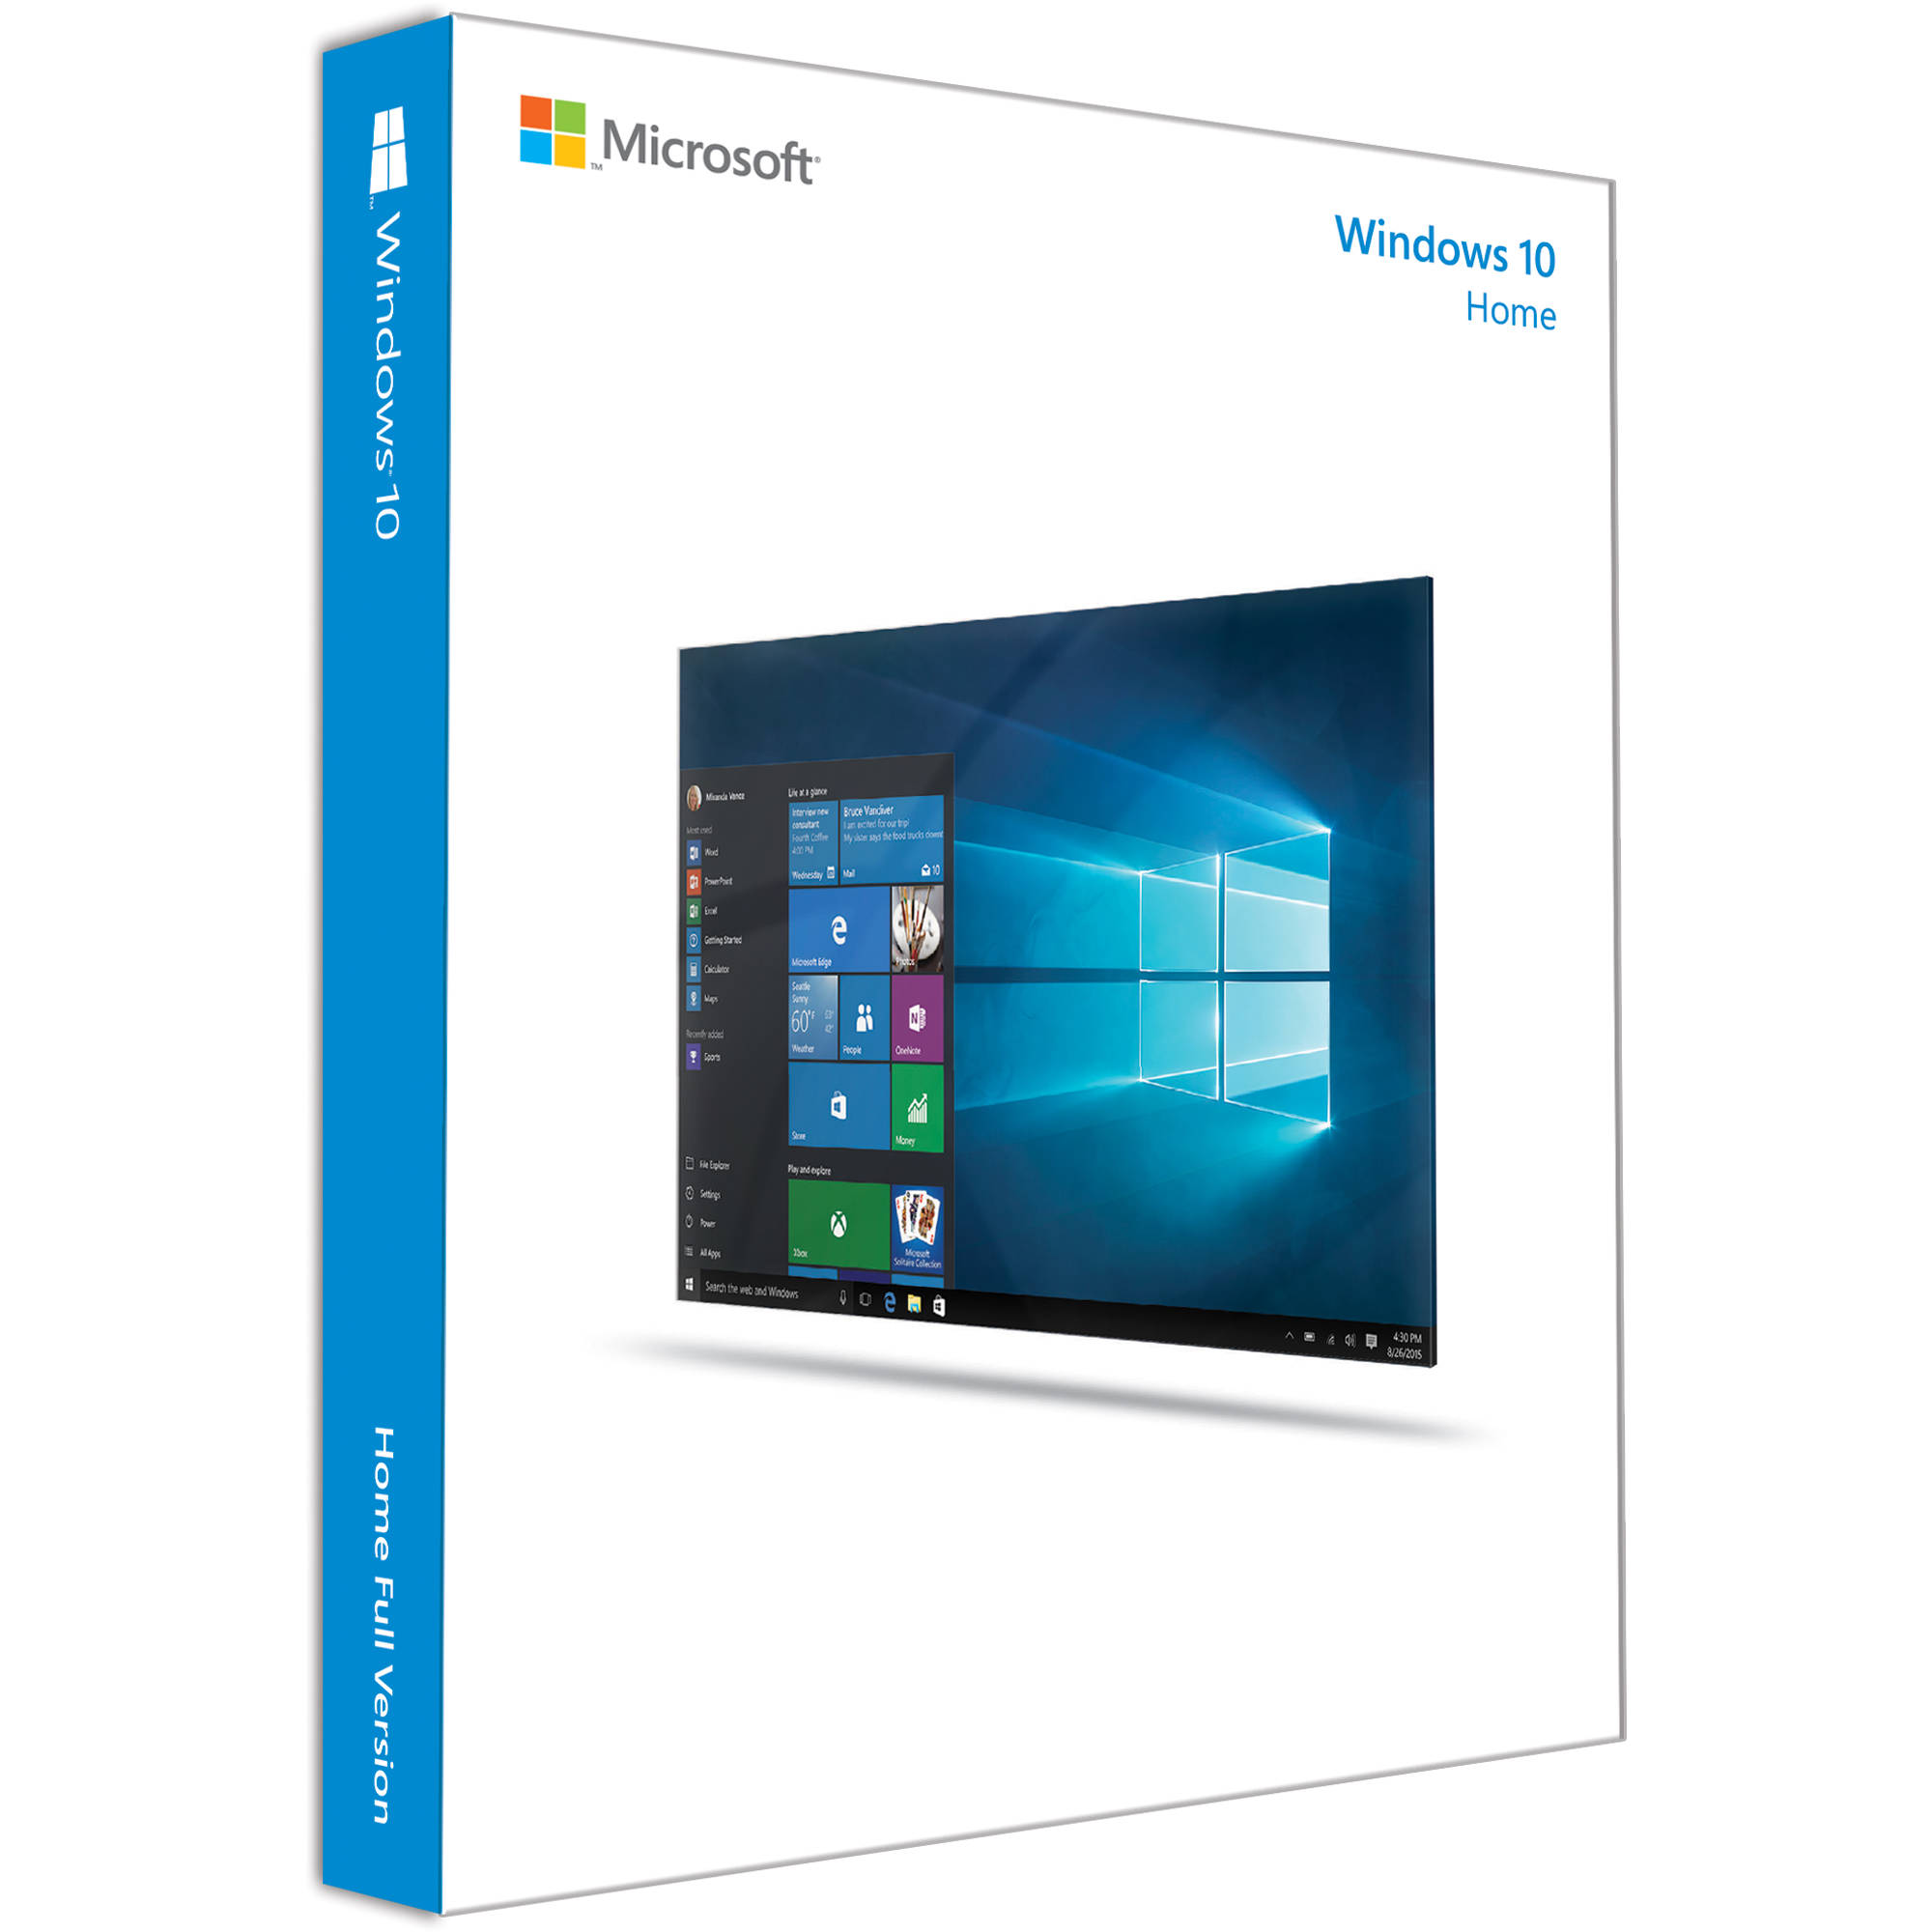 microsoft windows 10 home kw9 00140 b h photo video